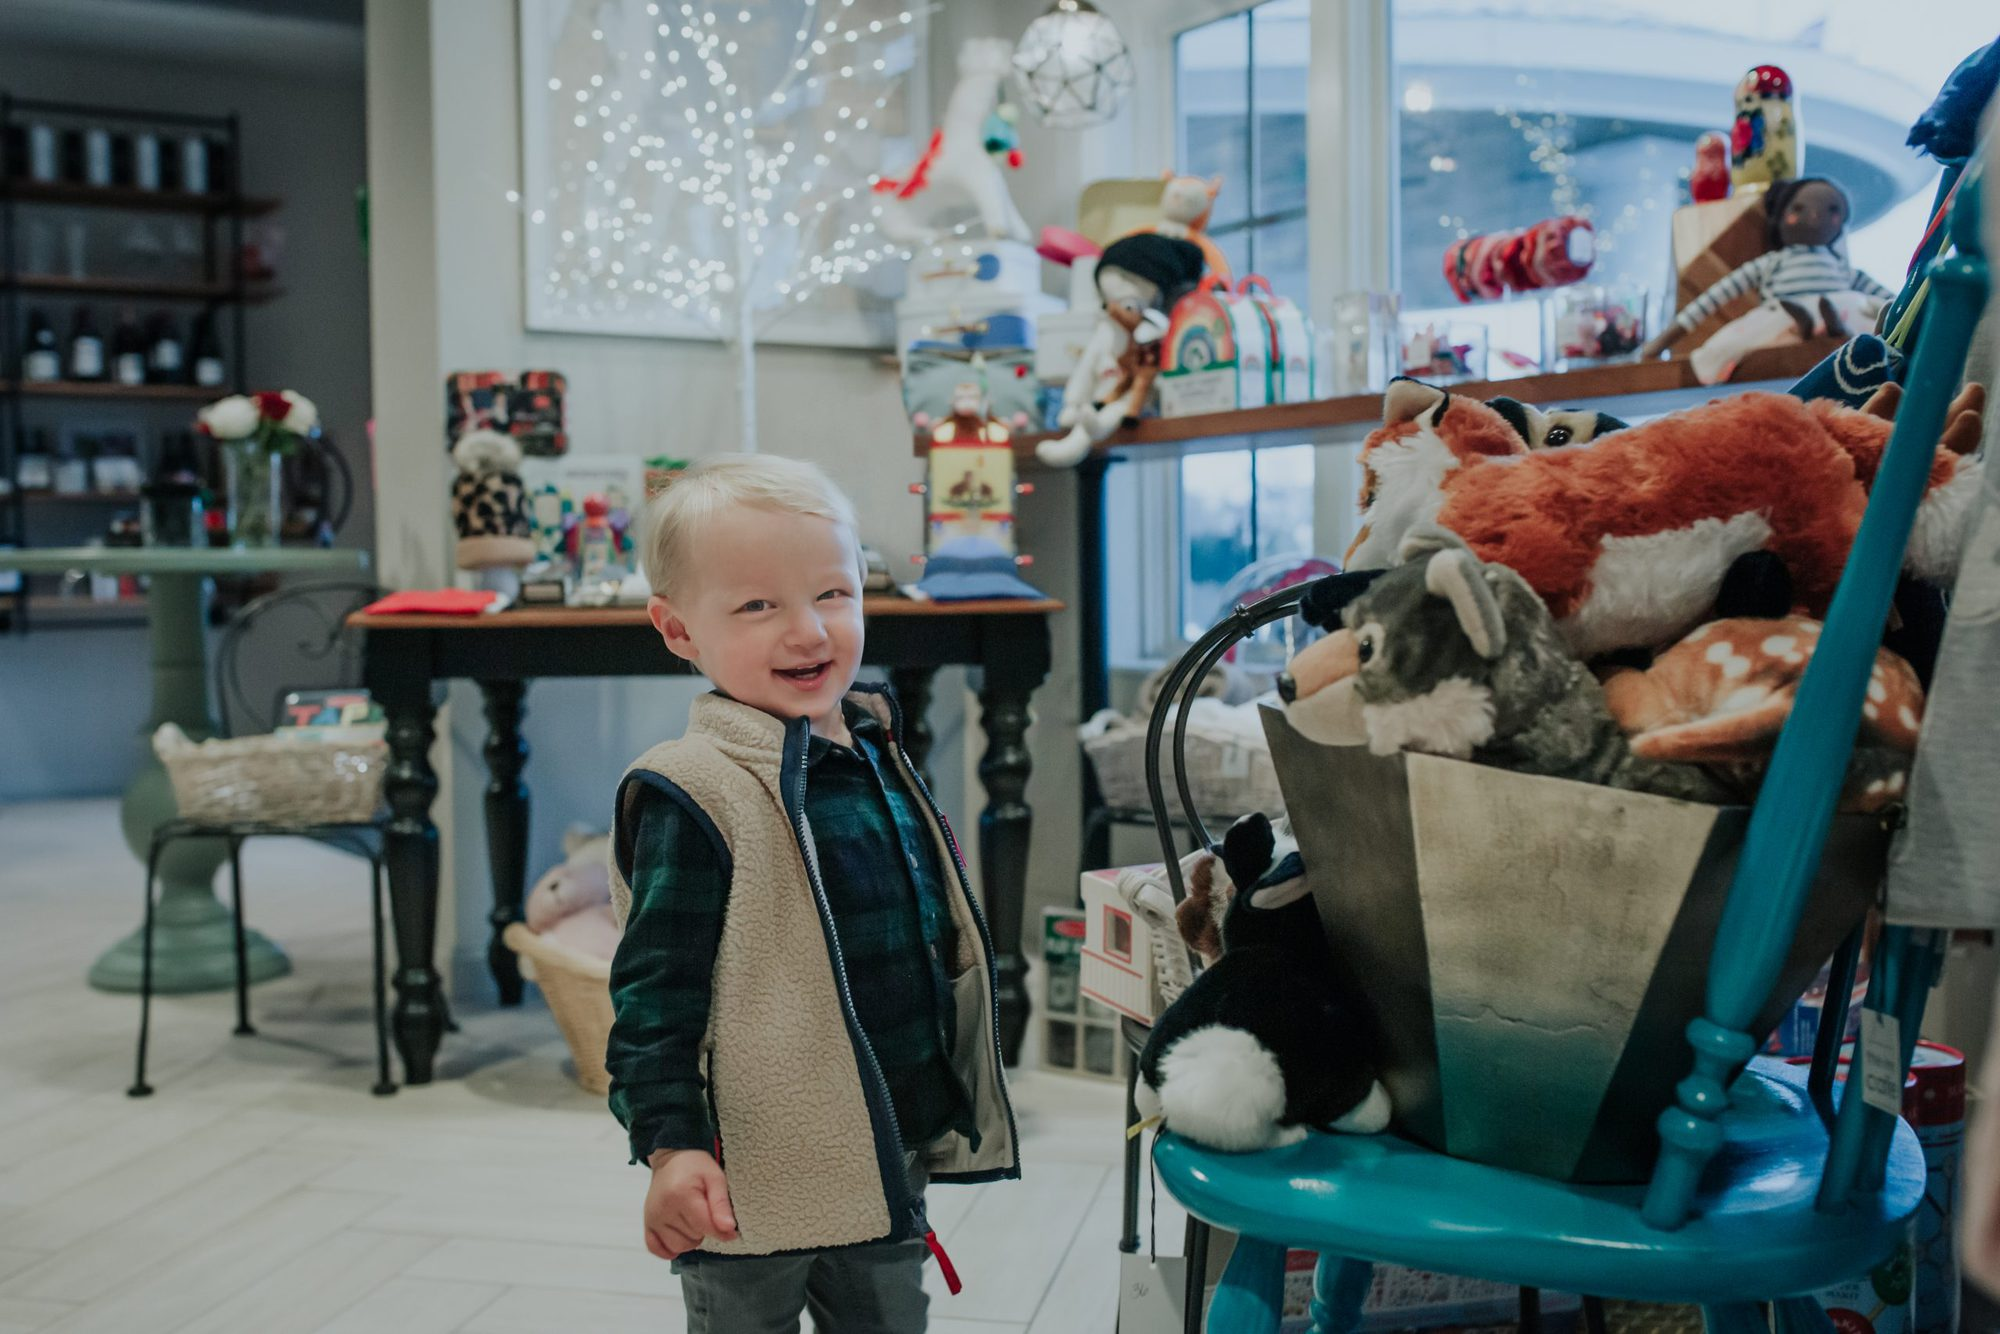 toddler boy smiling in toy shop |Inn at Bay Harbor by popular Michigan travel blog, The House of Navy: image a  little boy looking at a display of stuffed animals.